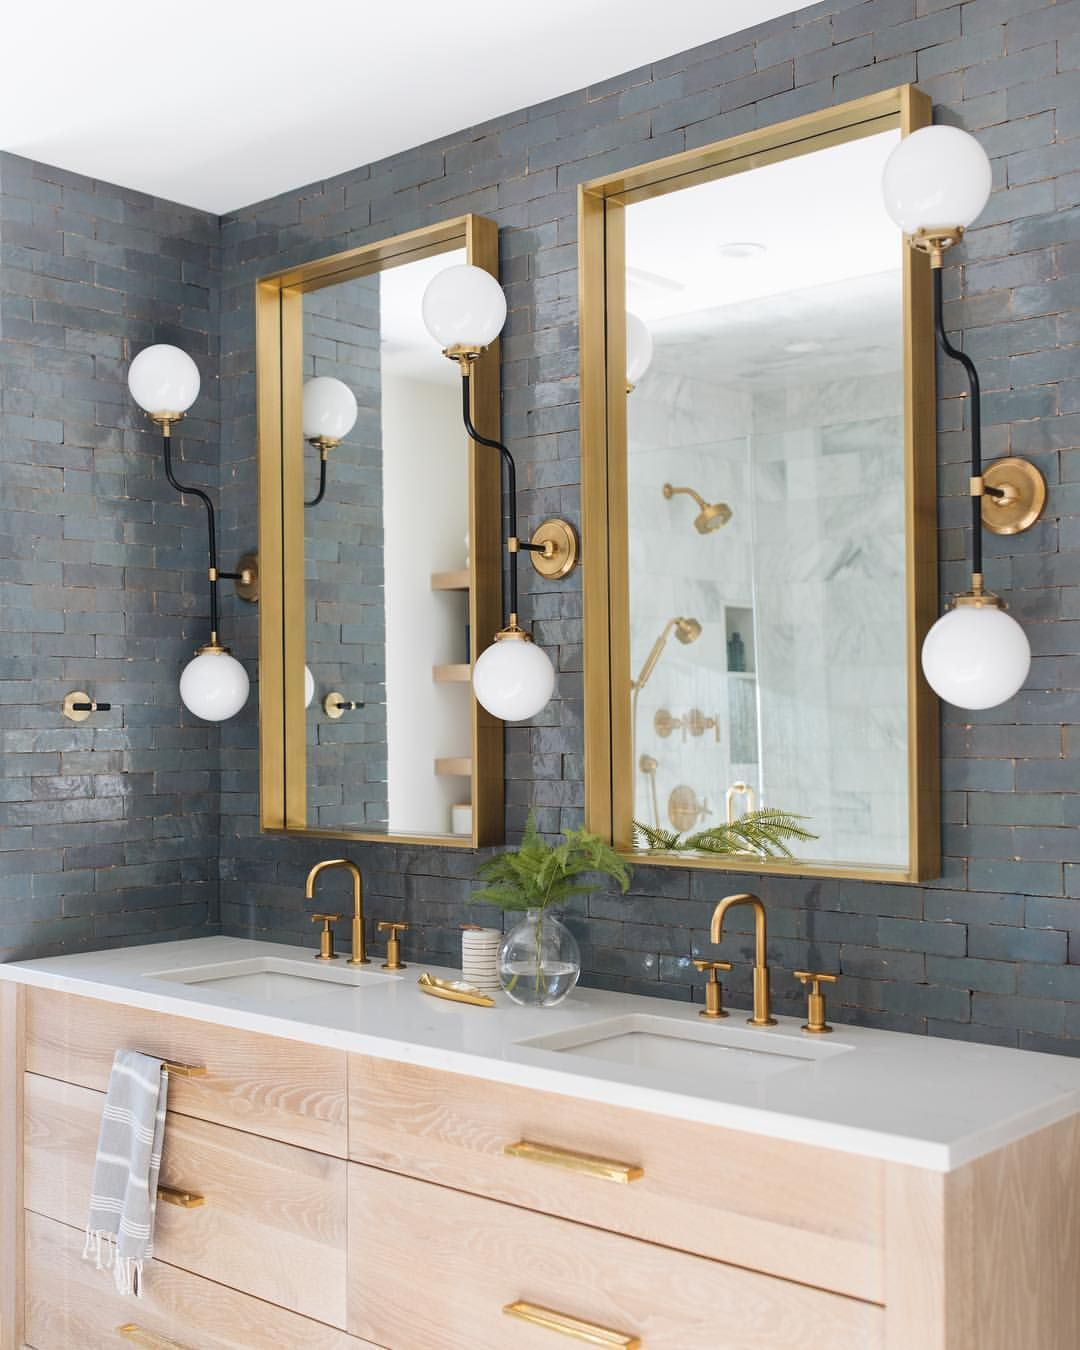 Please Sign Us Up For This Coffee Station By Bluebell Kitchens It S A Frigid Wednesday Morning Here Bathroom Remodel Cost Bathrooms Remodel Bathroom Design